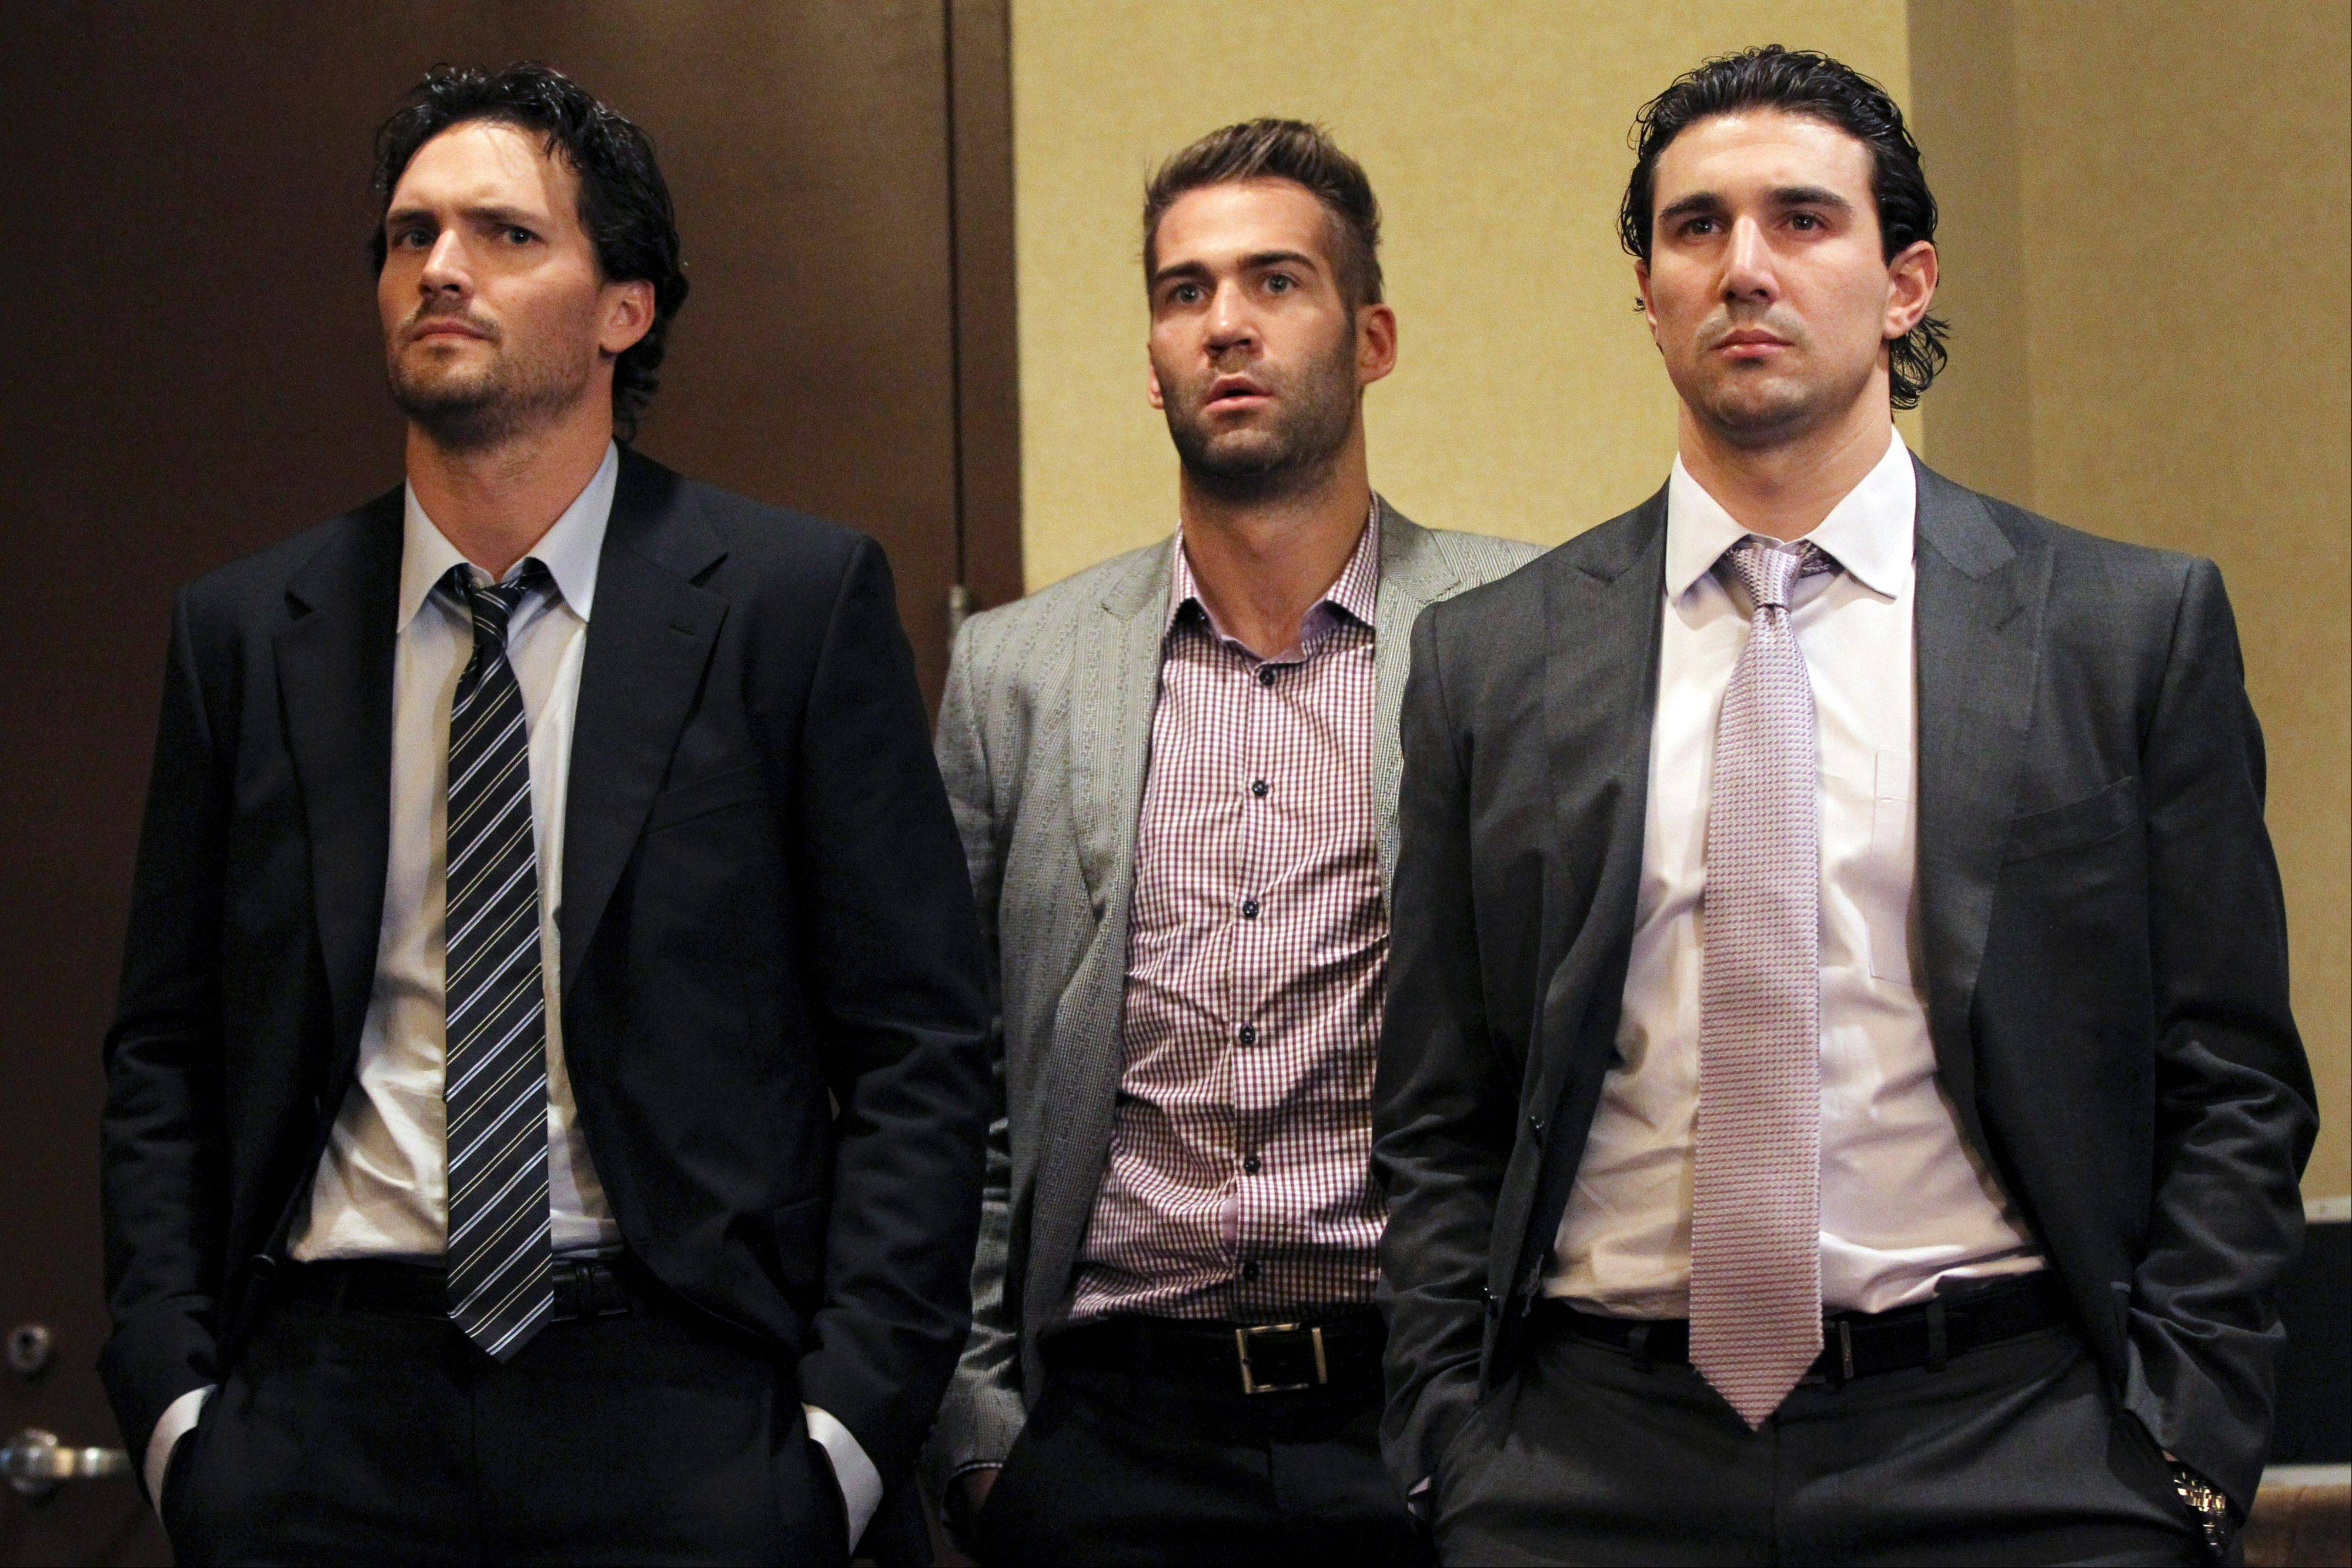 Winnipeg Jets' Ron Hainsey, left, Anaheim Ducks' Daniel Winnik, center, and free agent Chris Campoli listen to NHL Commissioner Gary Bettman and deputy commissioner Bill Daly last week in New York.